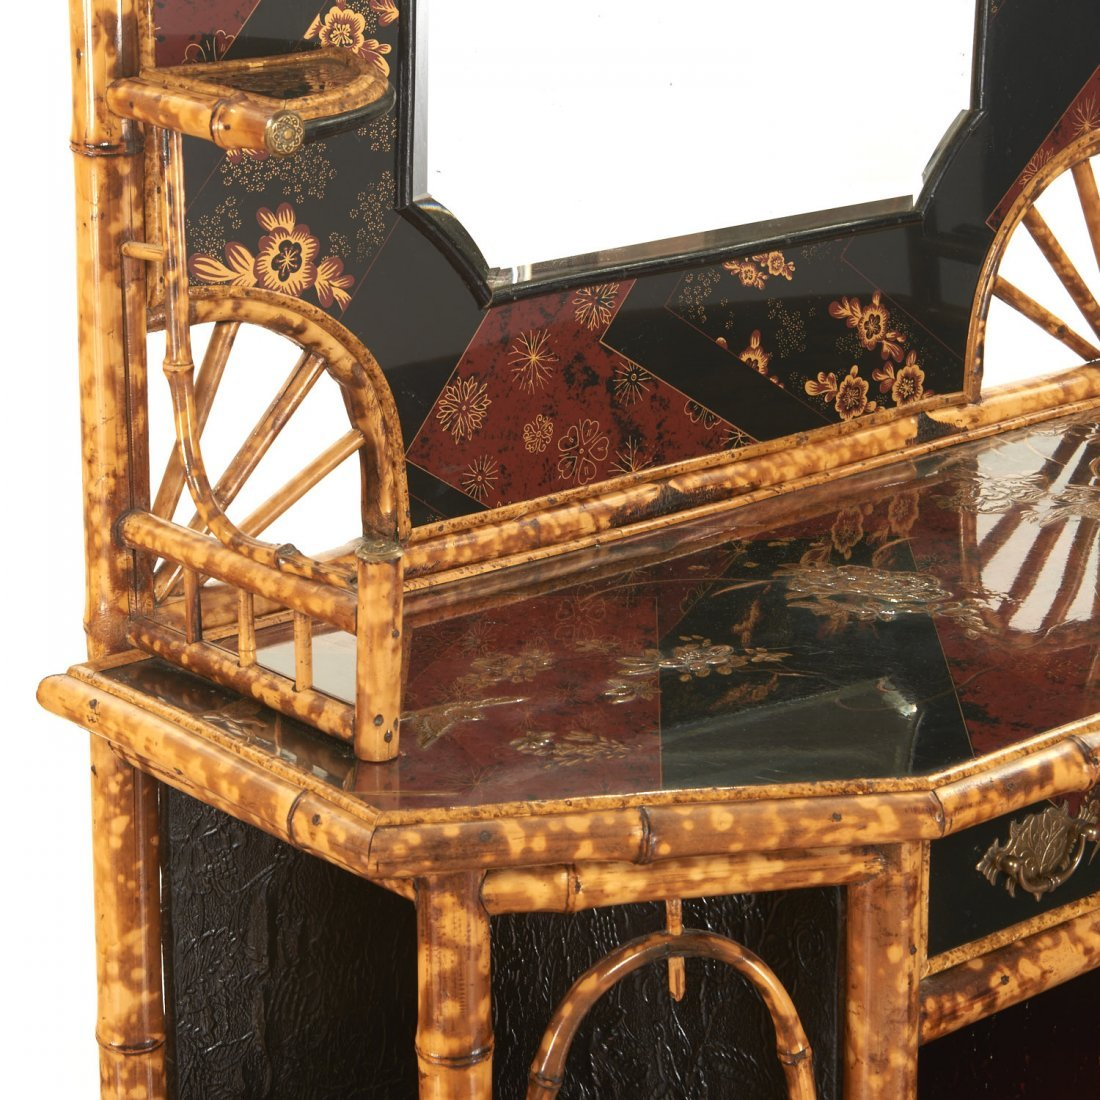 Victorian style chinoiserie lacquer etagere - 5